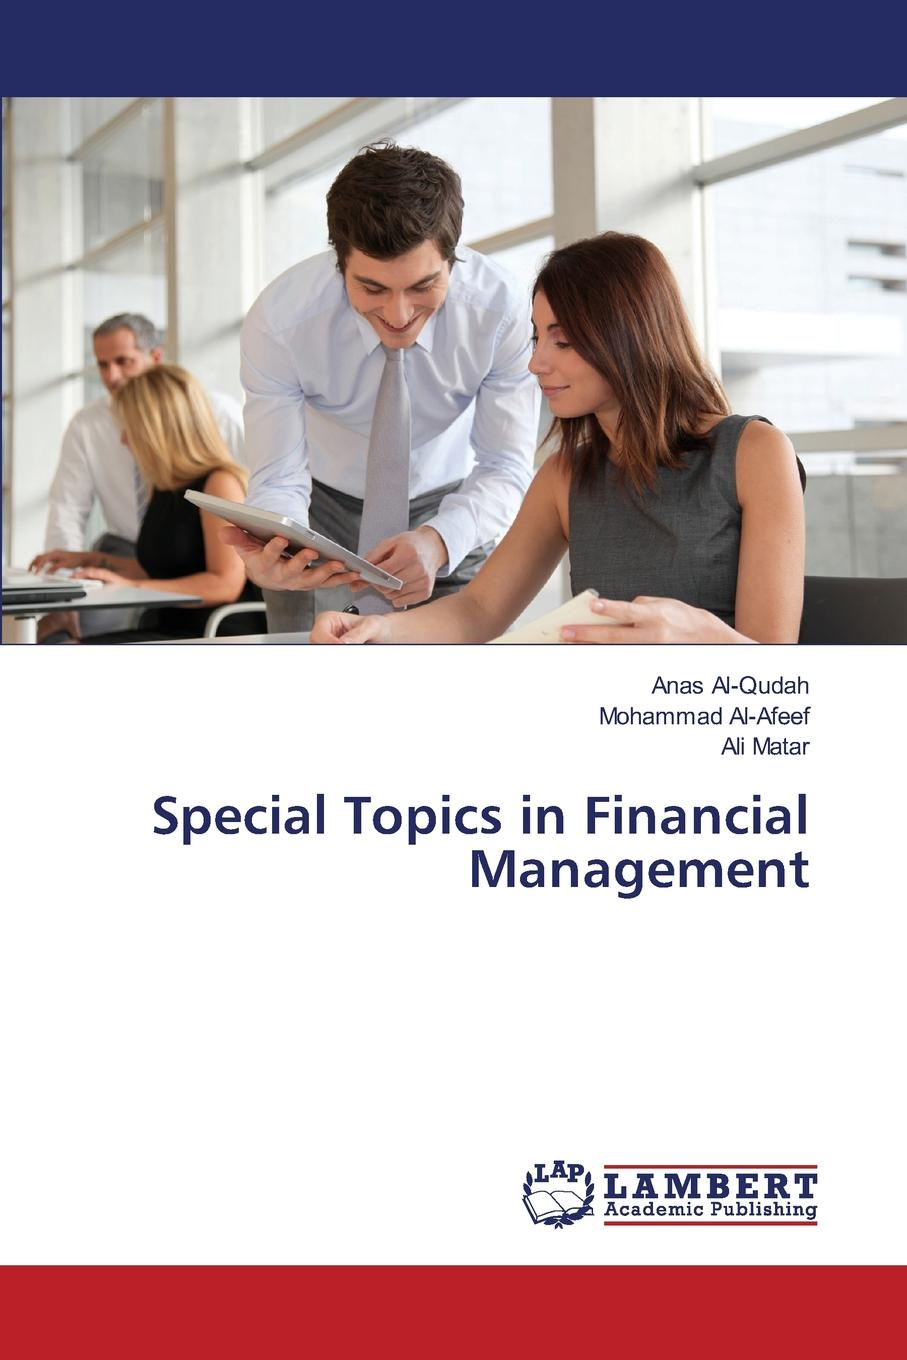 Al-Qudah Anas, Al-Afeef Mohammad, Matar Ali Special Topics in Financial Management yamini agarwal capital structure decisions evaluating risk and uncertainty